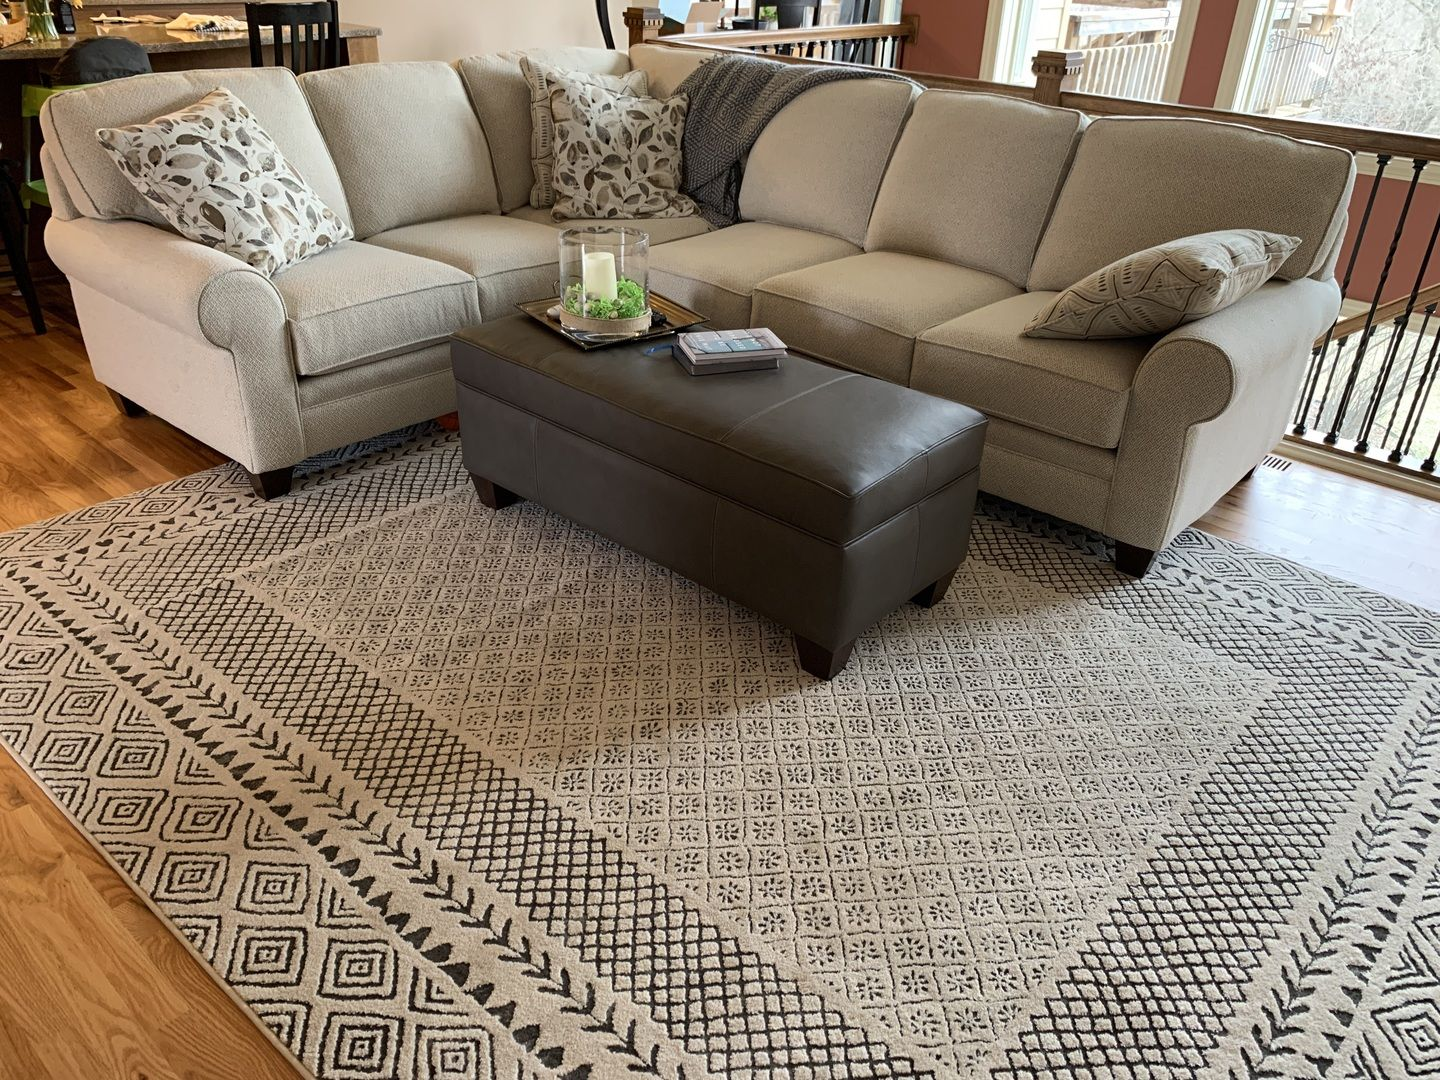 Bahar Bhr 2321 Area Rug Area Rugs Rugs In Living Room